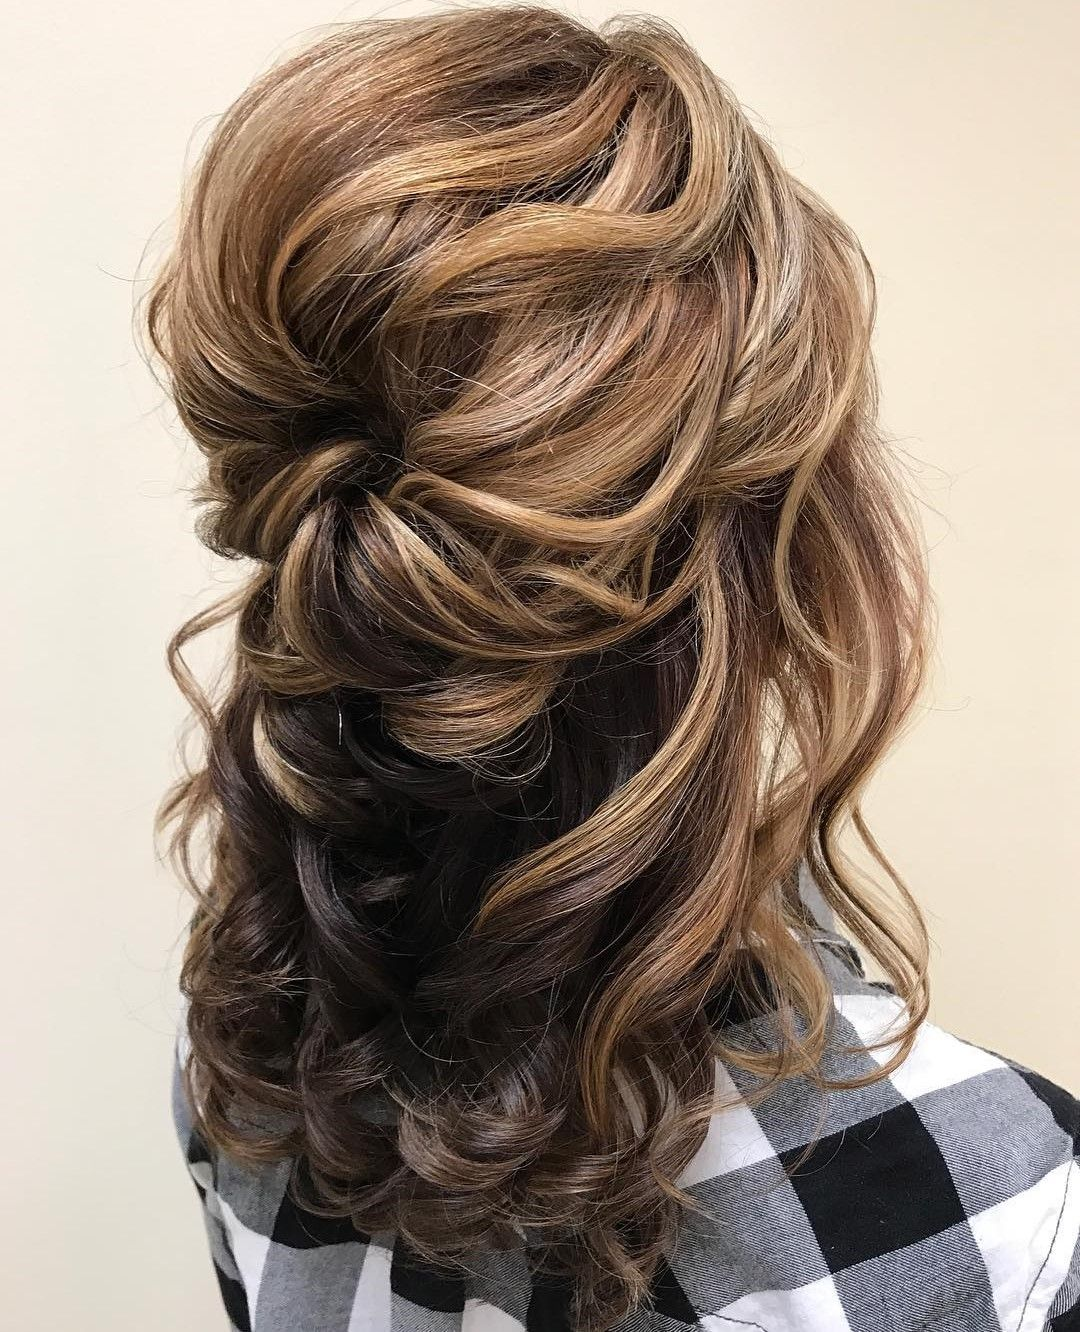 Hairstyle For Wedding For Long Hair: 50 Ravishing Mother Of The Bride Hairstyles